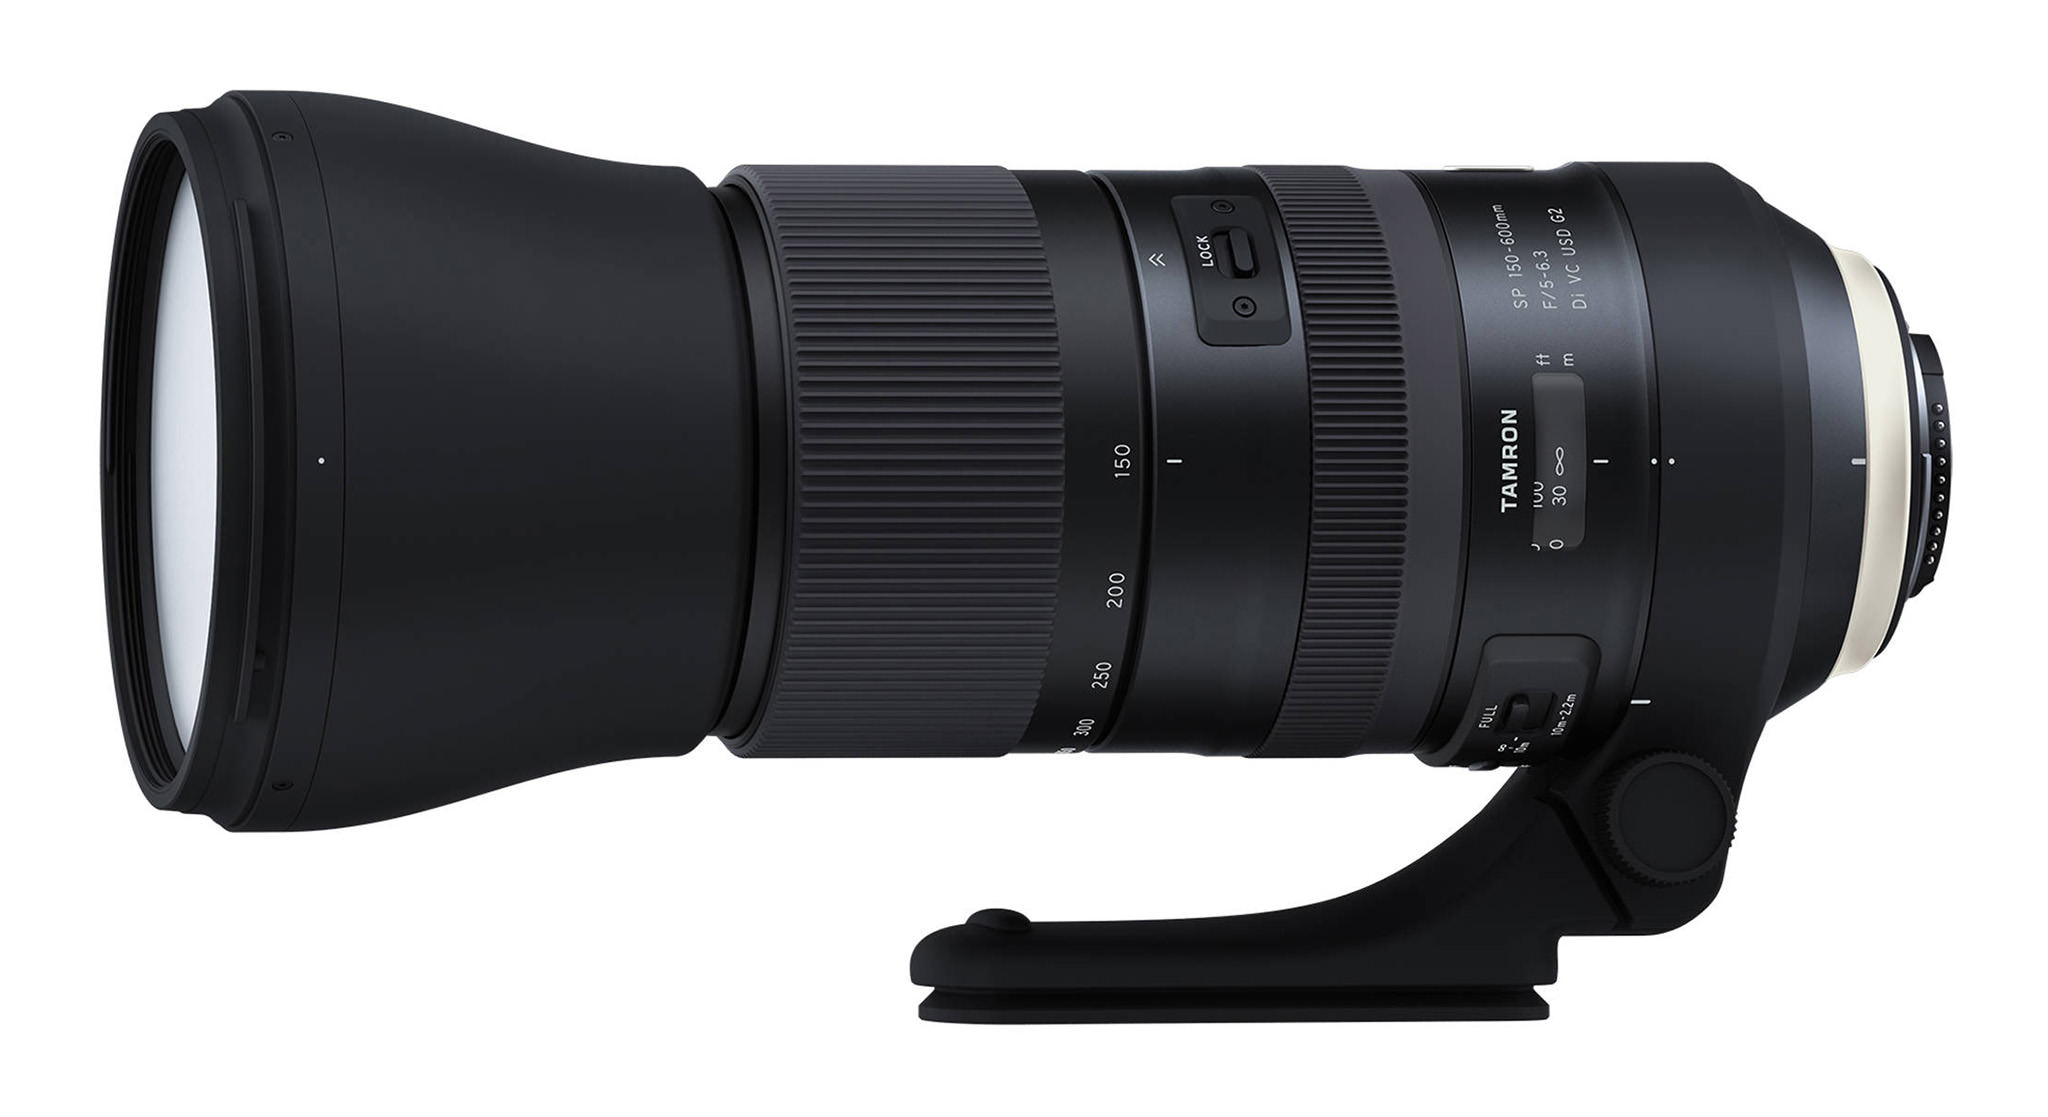 https://photographylife.com/tamron-150-600mm-di-vc-usd-g2-announcement